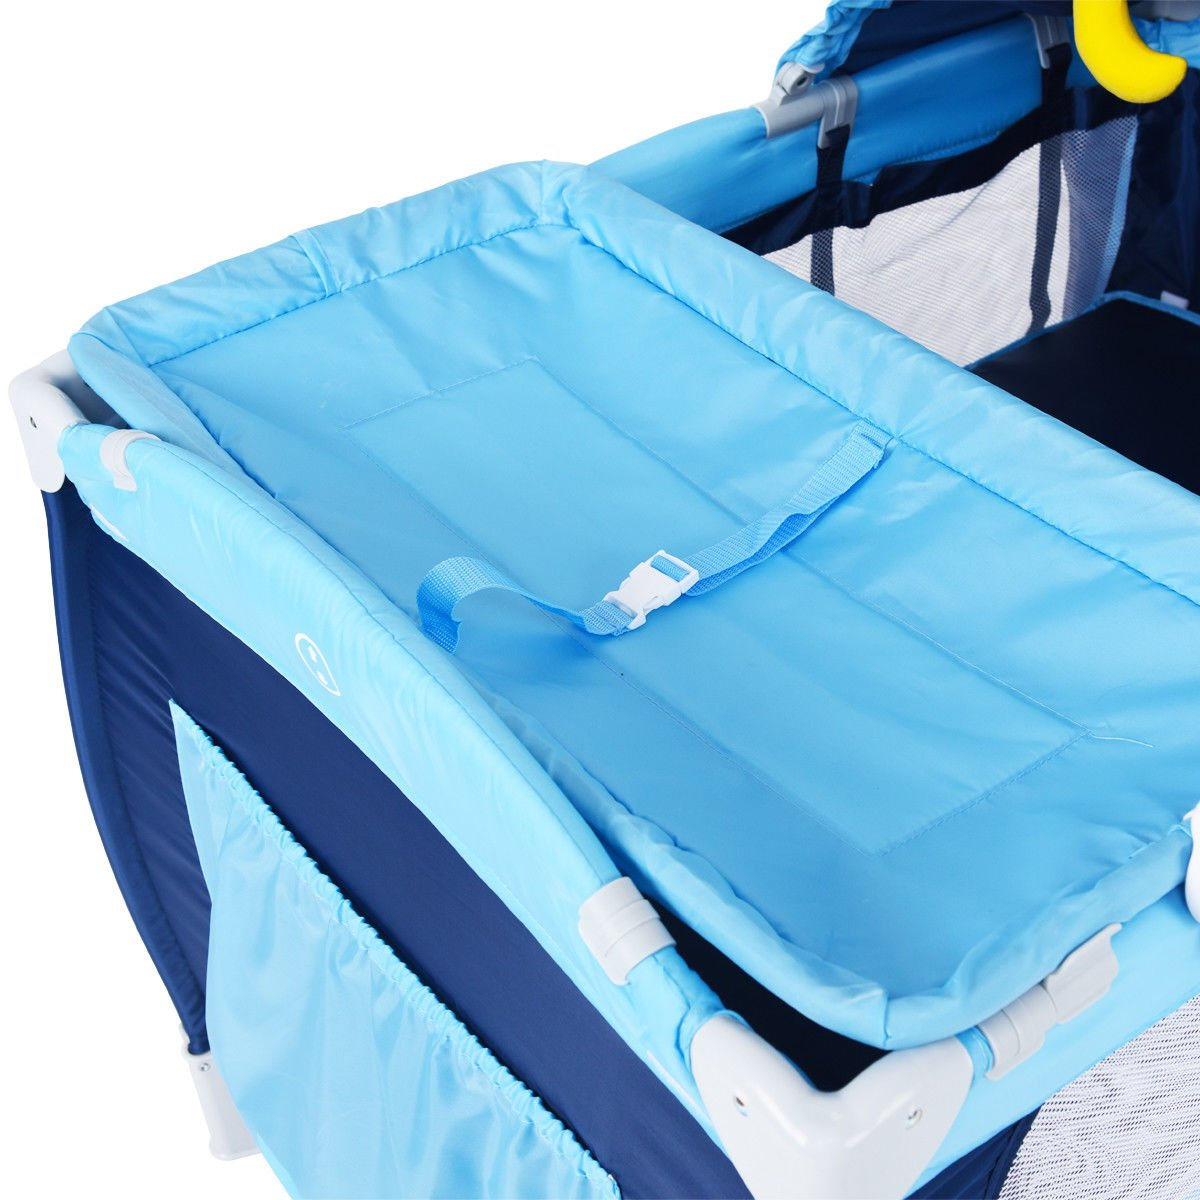 New Foldable Baby Crib Playpen Travel Infant Bassinet Bed Mosquito Net Music w Bag by Costway (Image #8)